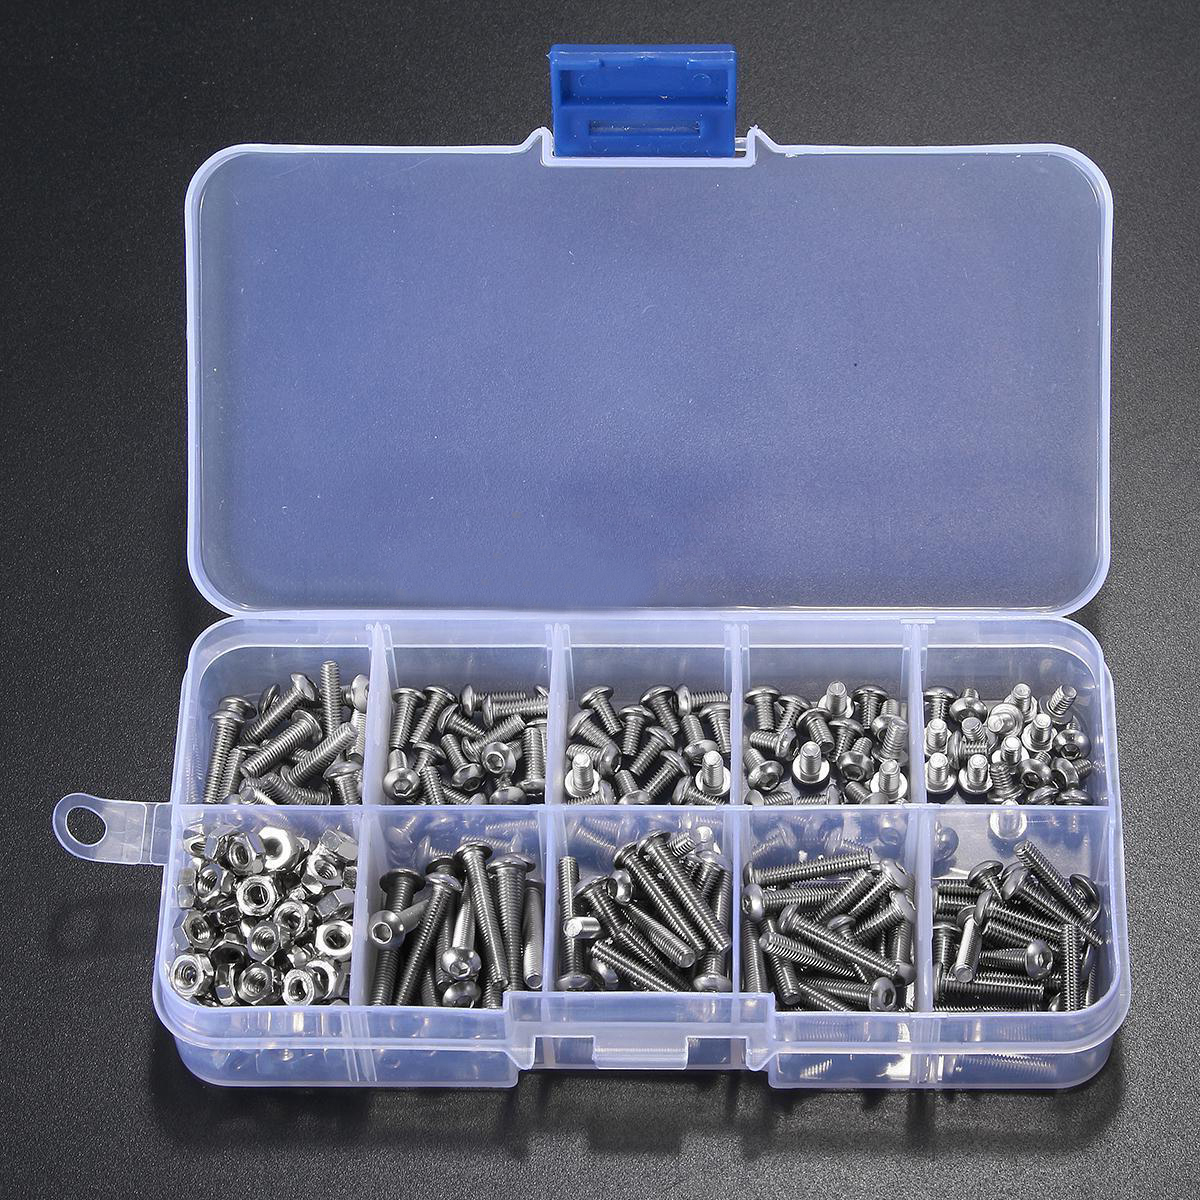 340pcs Assorted M3 A2 Screws Stainless Steel Hex Screw with Hex Nuts Bolt Cap Socket Set 5/6/8/10/12/14/16/18/20mm 340pcs stainless steel m3 a2 hex screw kit assortment nuts bolt cap socket set 125x65x22mm with case